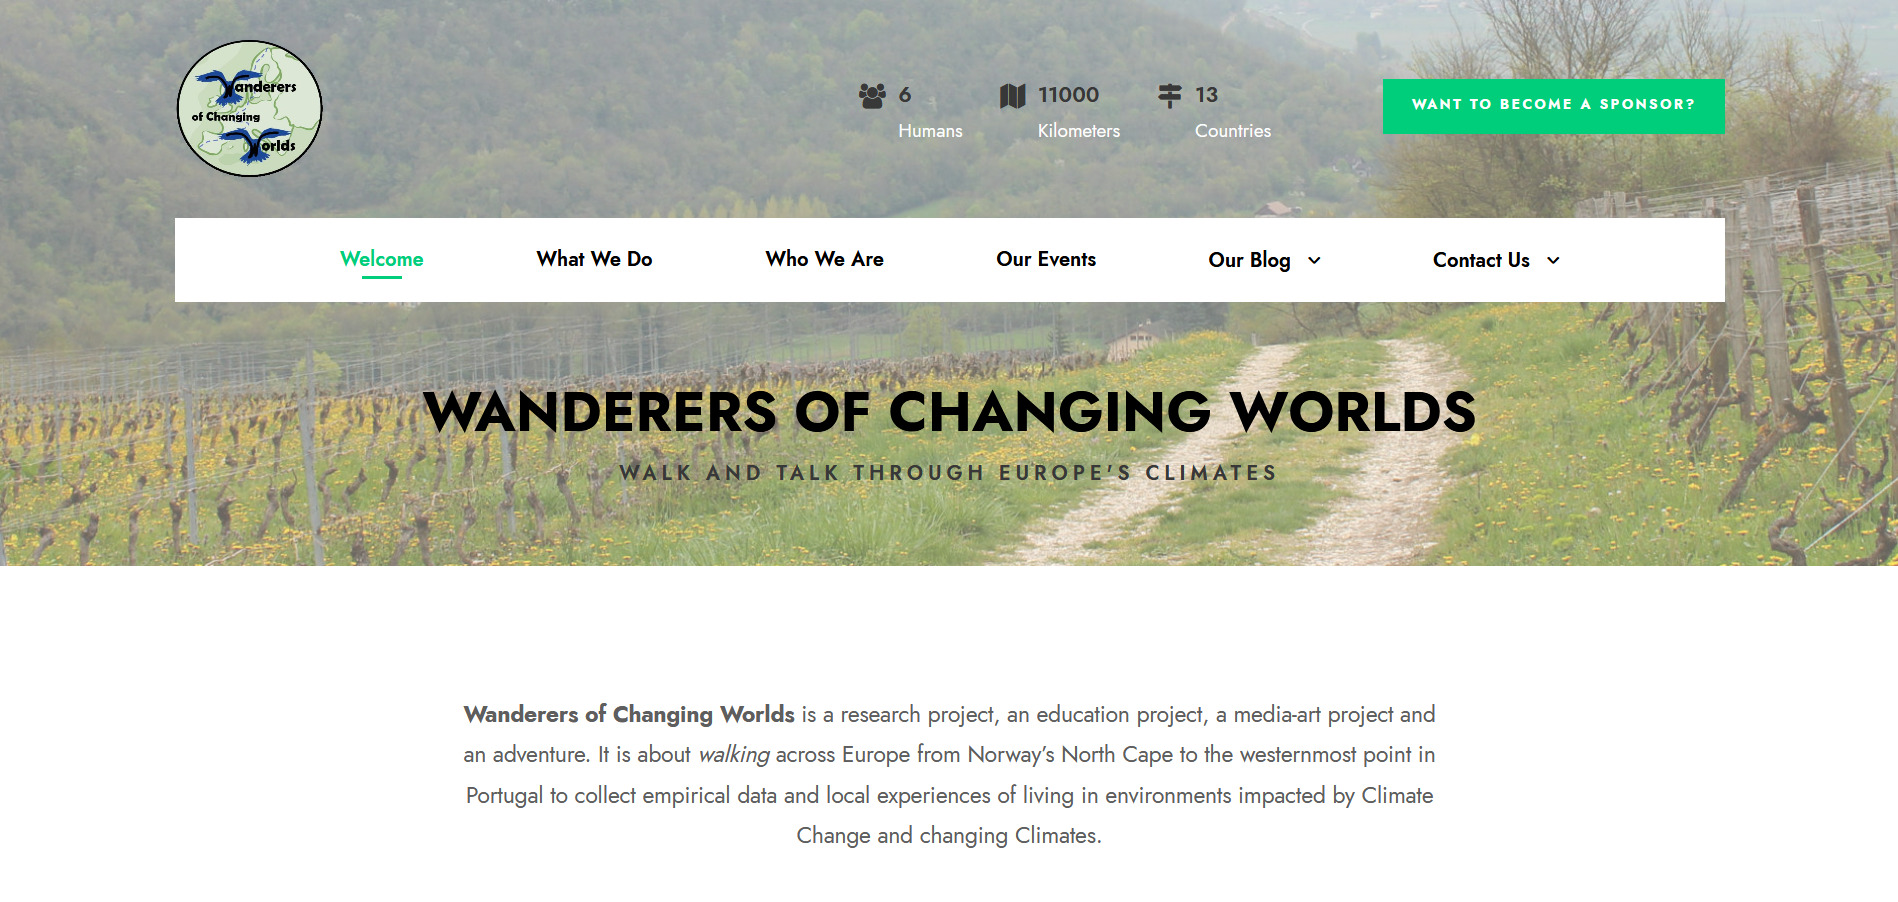 Climate Walk by the Wanderers of Changing Worlds